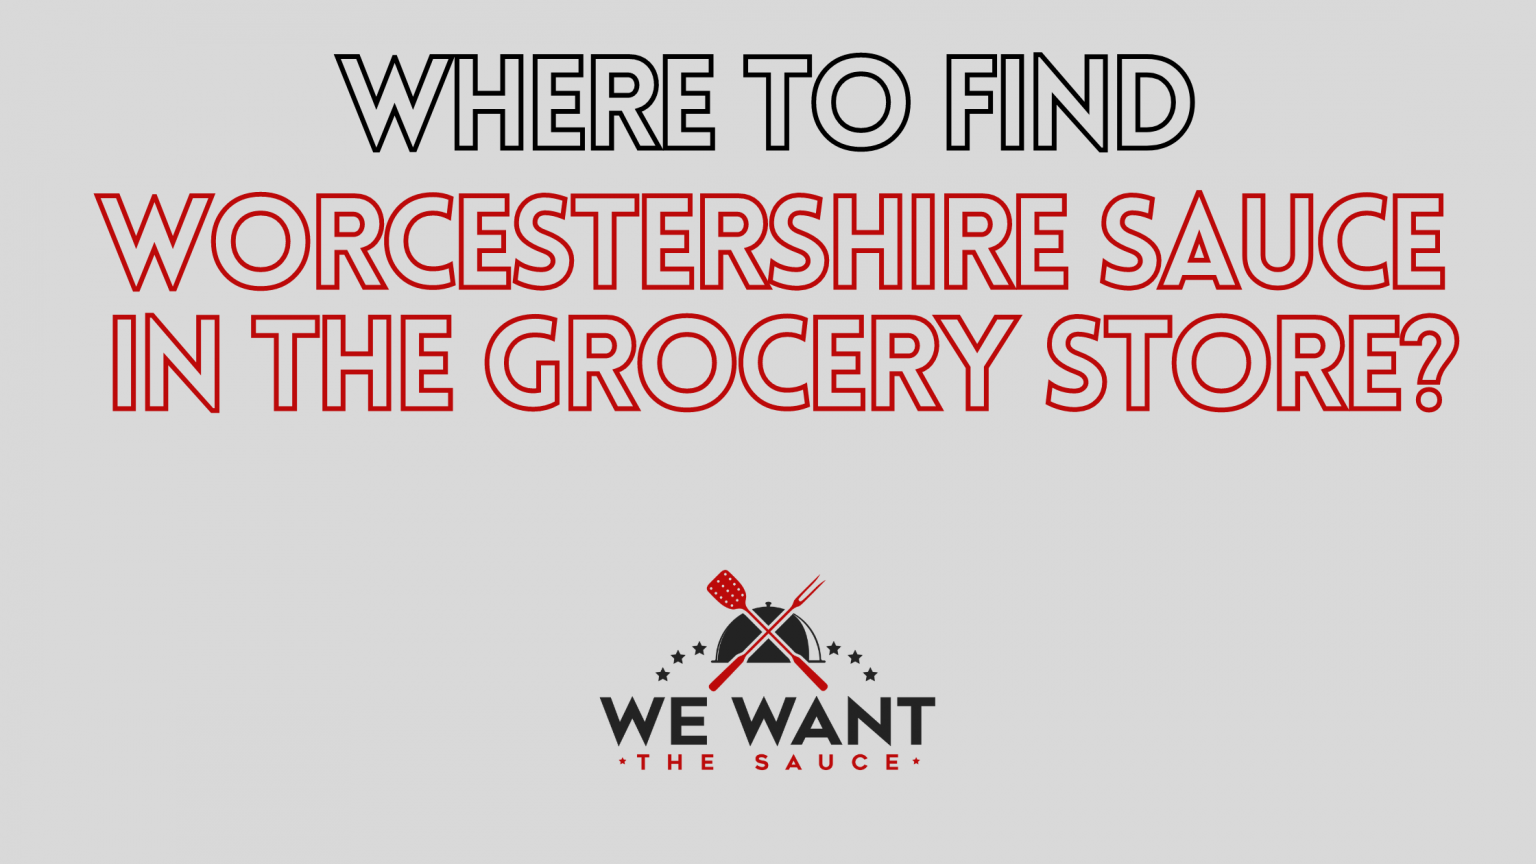 Where Is Worcestershire Sauce In The Grocery Store?